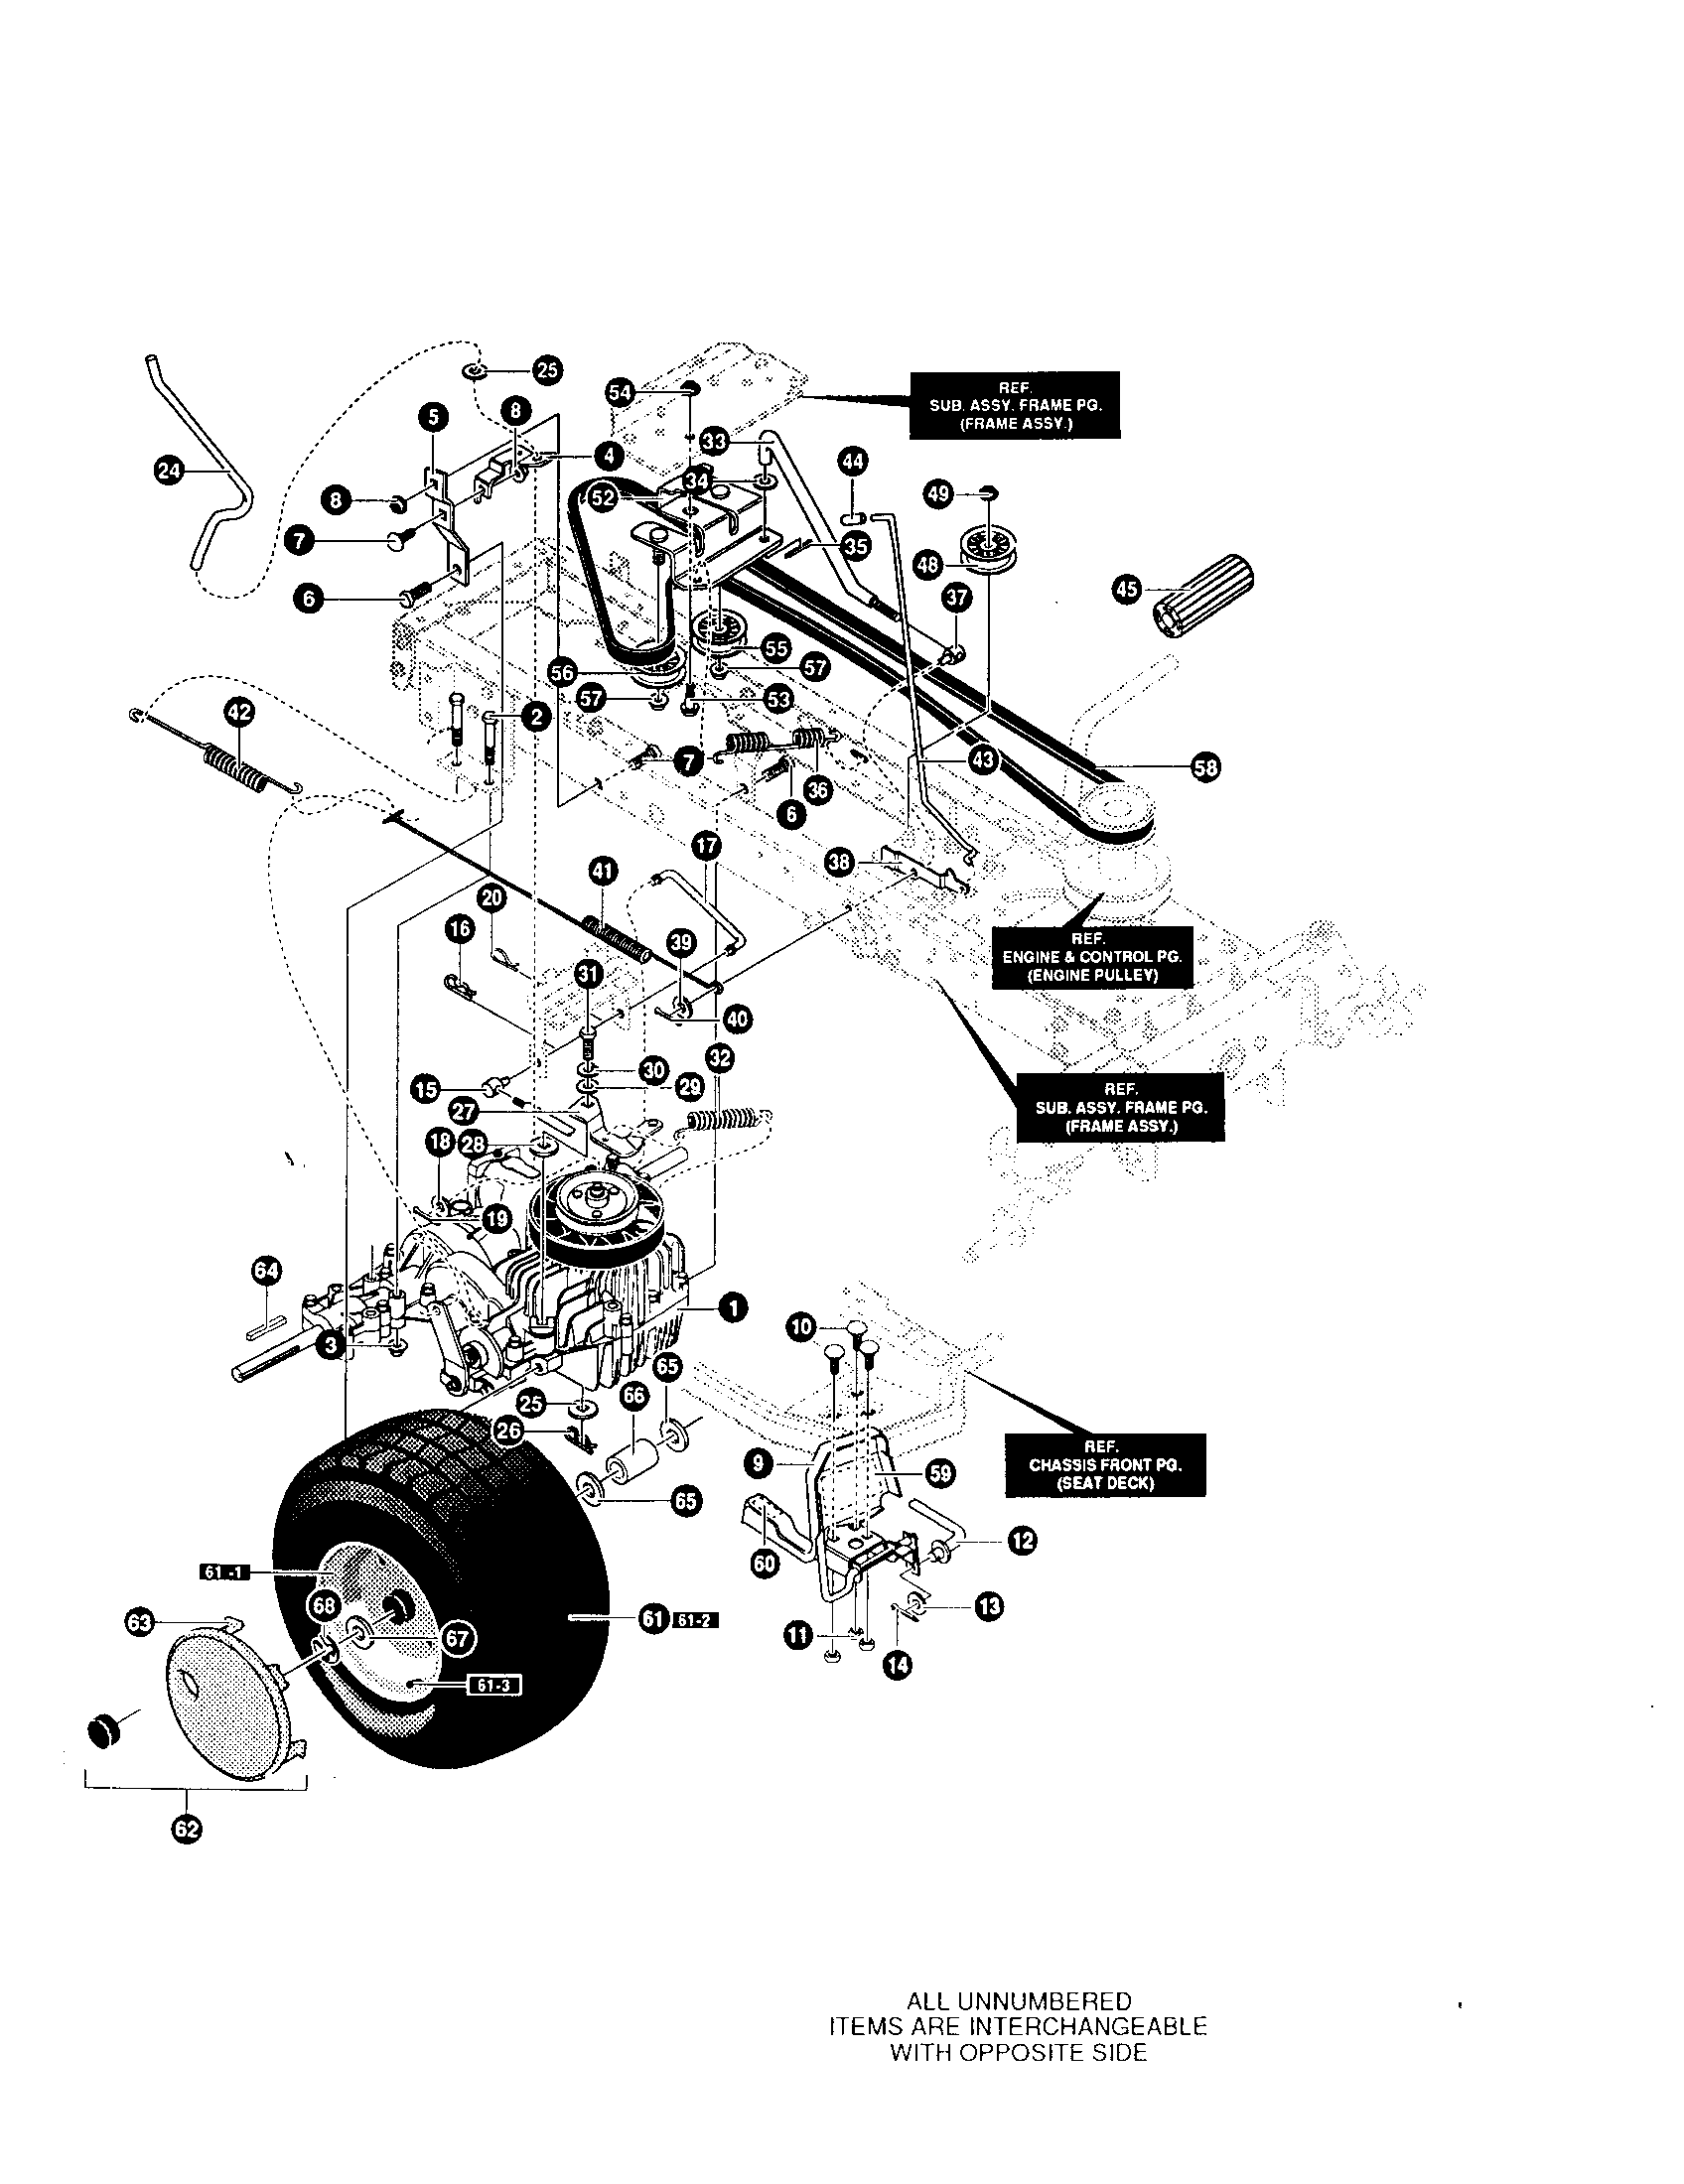 hight resolution of yard king 50562x89 motion drive assembly diagram